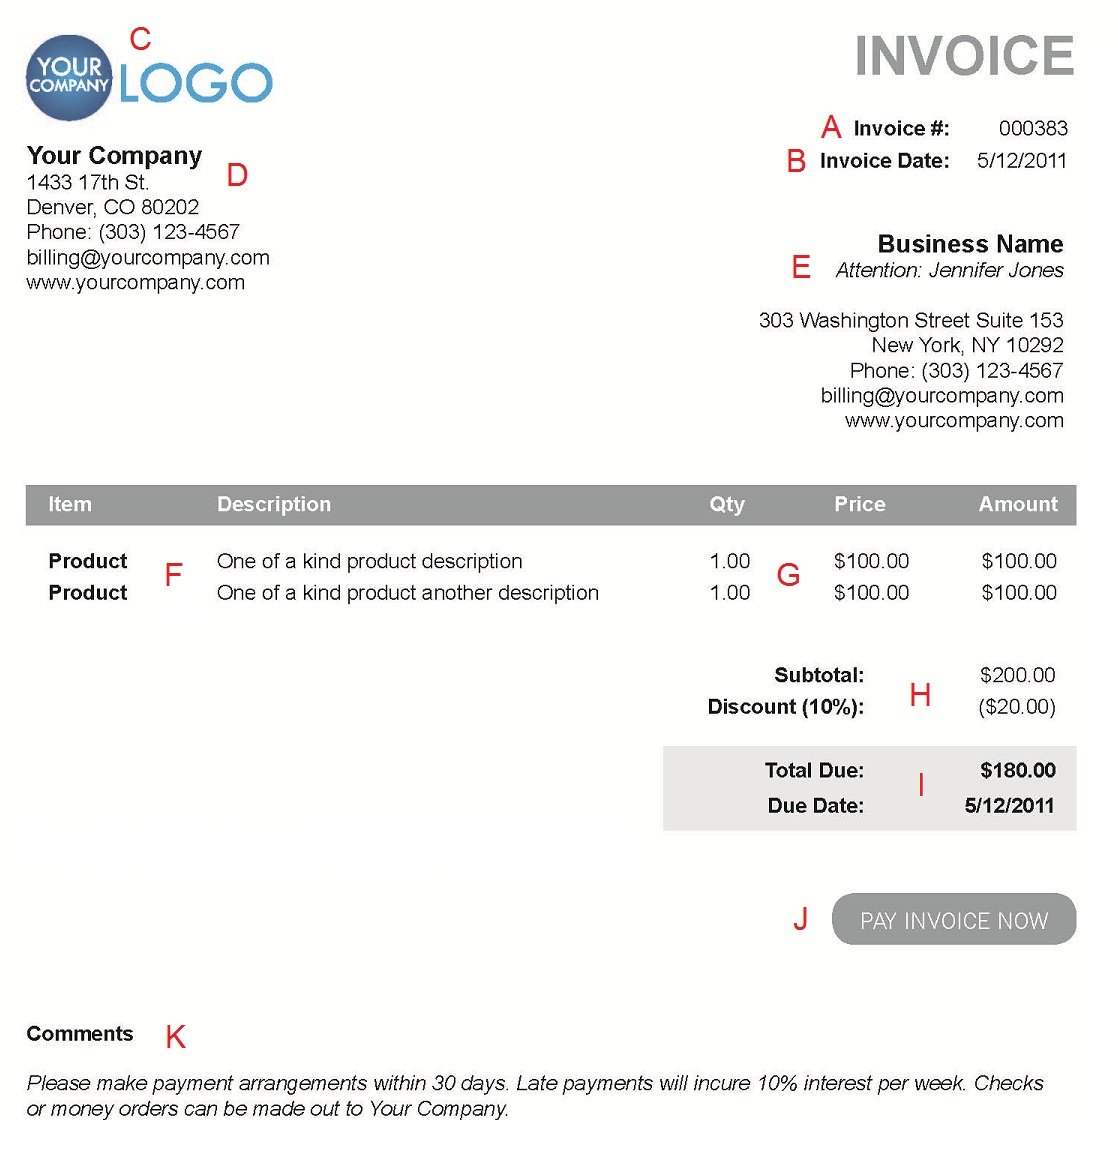 Coolmathgamesus  Surprising The  Different Sections Of An Electronic Payment Invoice With Luxury A  With Captivating Payment Terms Due On Receipt Also Babies R Us No Receipt Return Policy In Addition  C  Donation Receipt And Army Hand Receipt Example As Well As How To Scan A Receipt Additionally Cash Receipt Accounting From Paysimplecom With Coolmathgamesus  Luxury The  Different Sections Of An Electronic Payment Invoice With Captivating A  And Surprising Payment Terms Due On Receipt Also Babies R Us No Receipt Return Policy In Addition  C  Donation Receipt From Paysimplecom